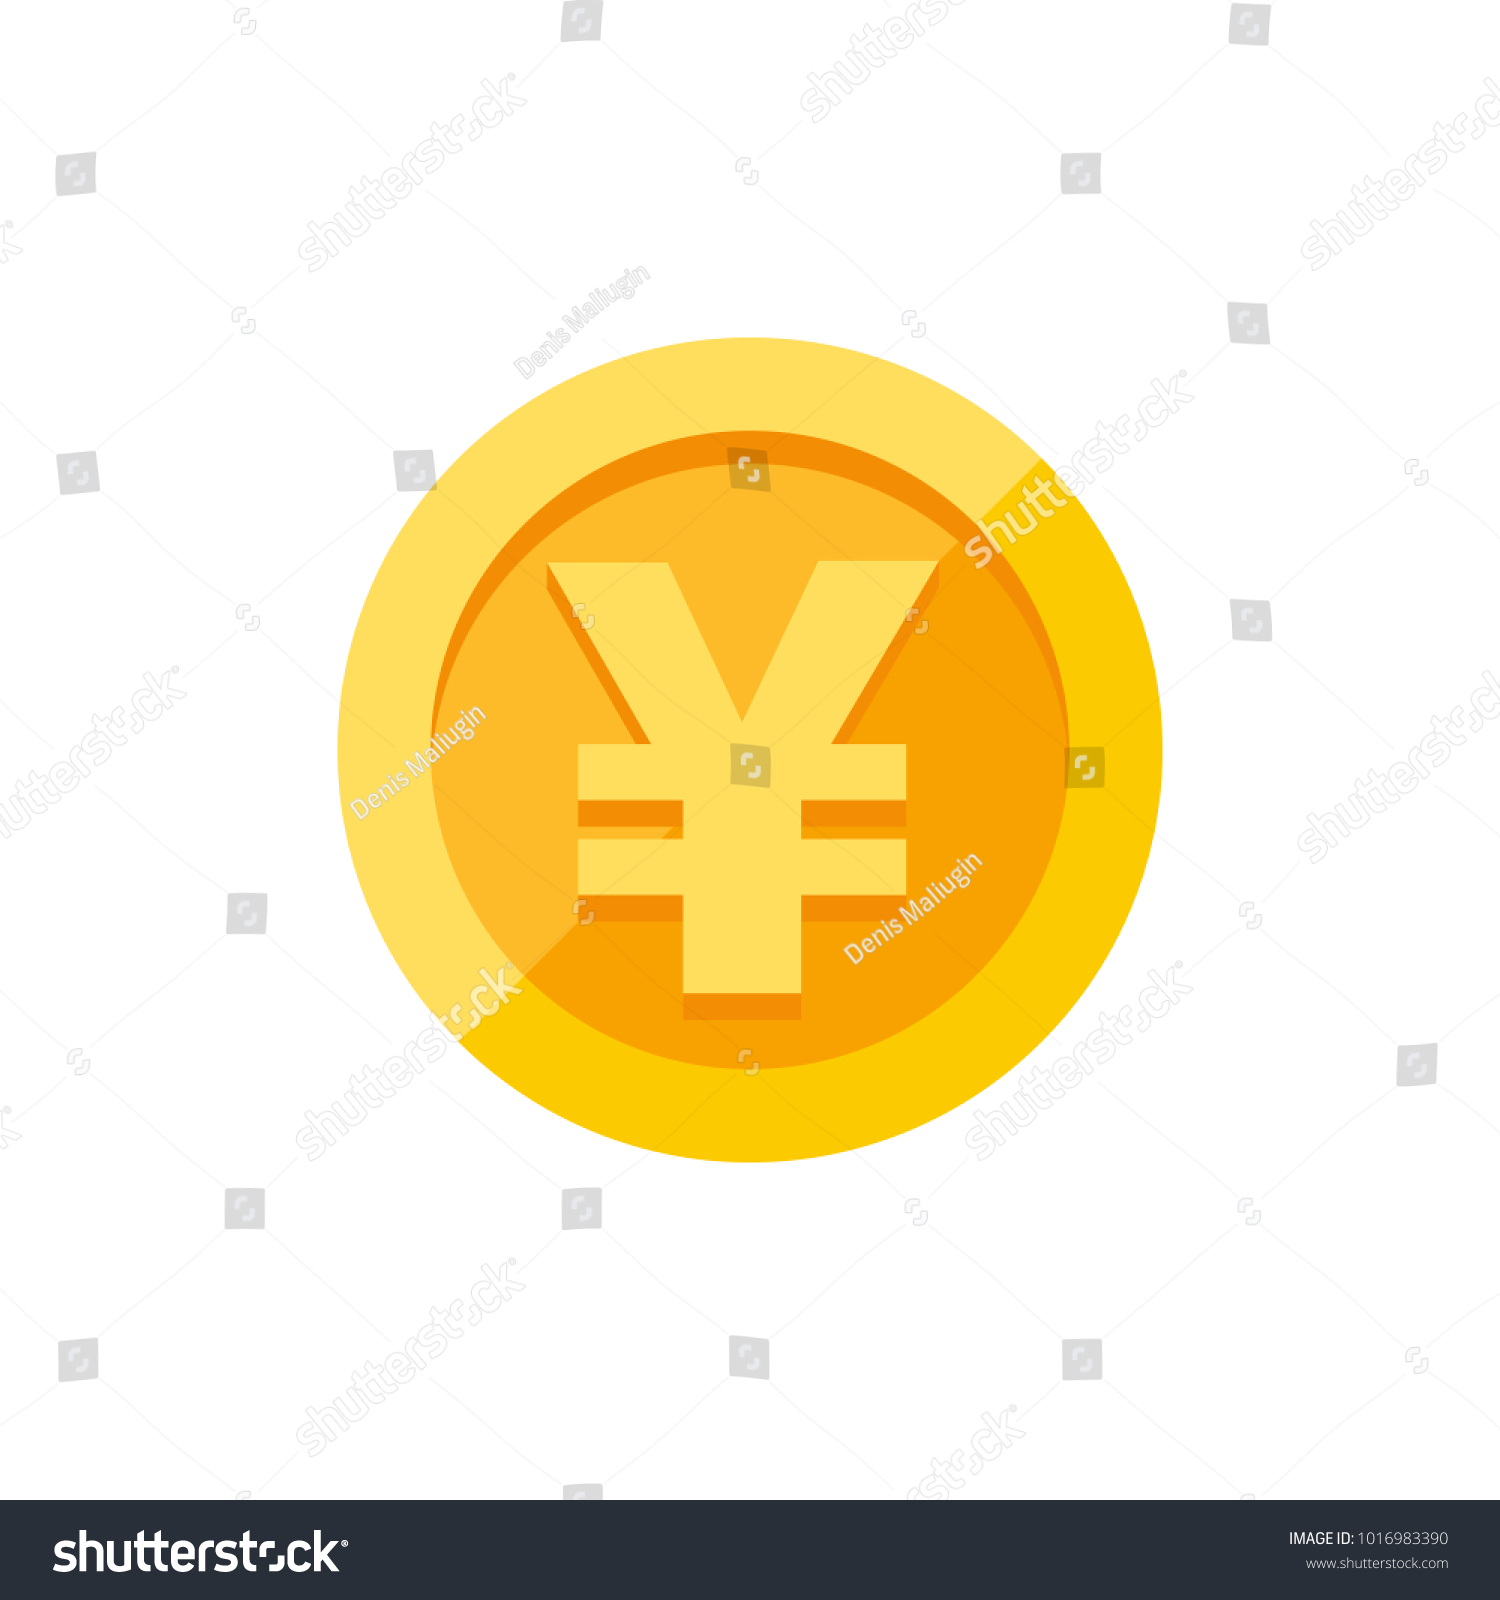 Chinese yuan japanese yen currency symbol stock vector 1016983390 chinese yuan or japanese yen currency symbol on gold coin money sign flat style vector buycottarizona